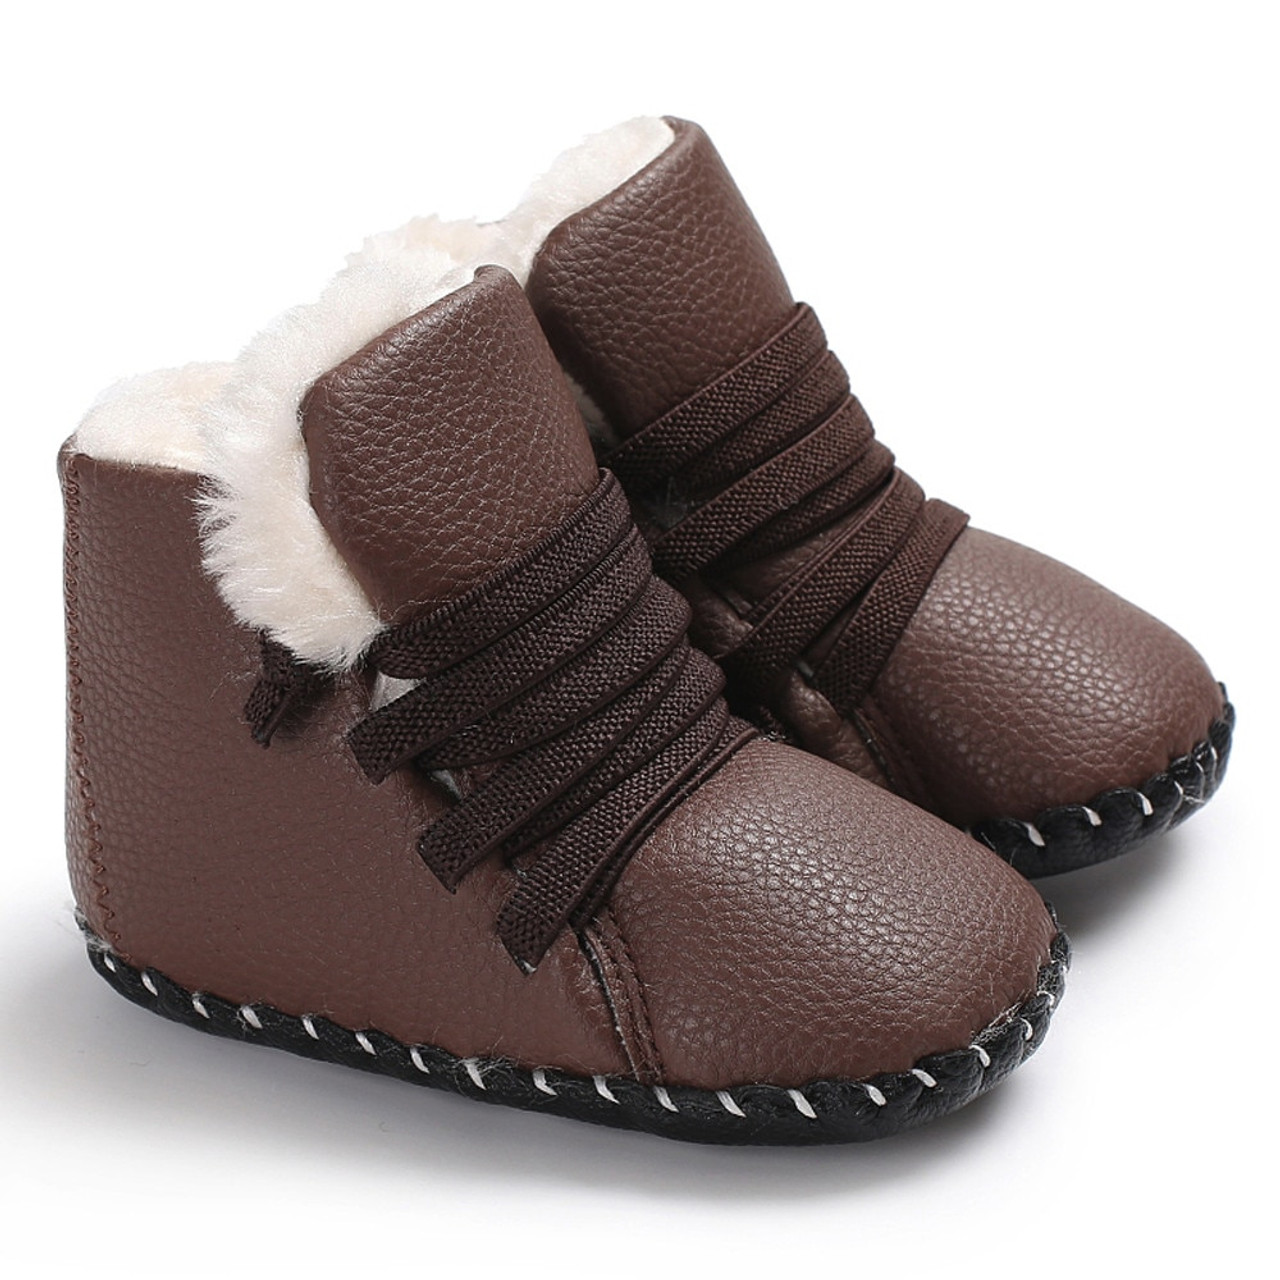 Infant Baby Girls Comfy Shoes Sole Bowknot Print Anti-slip Casual Crib Shoes